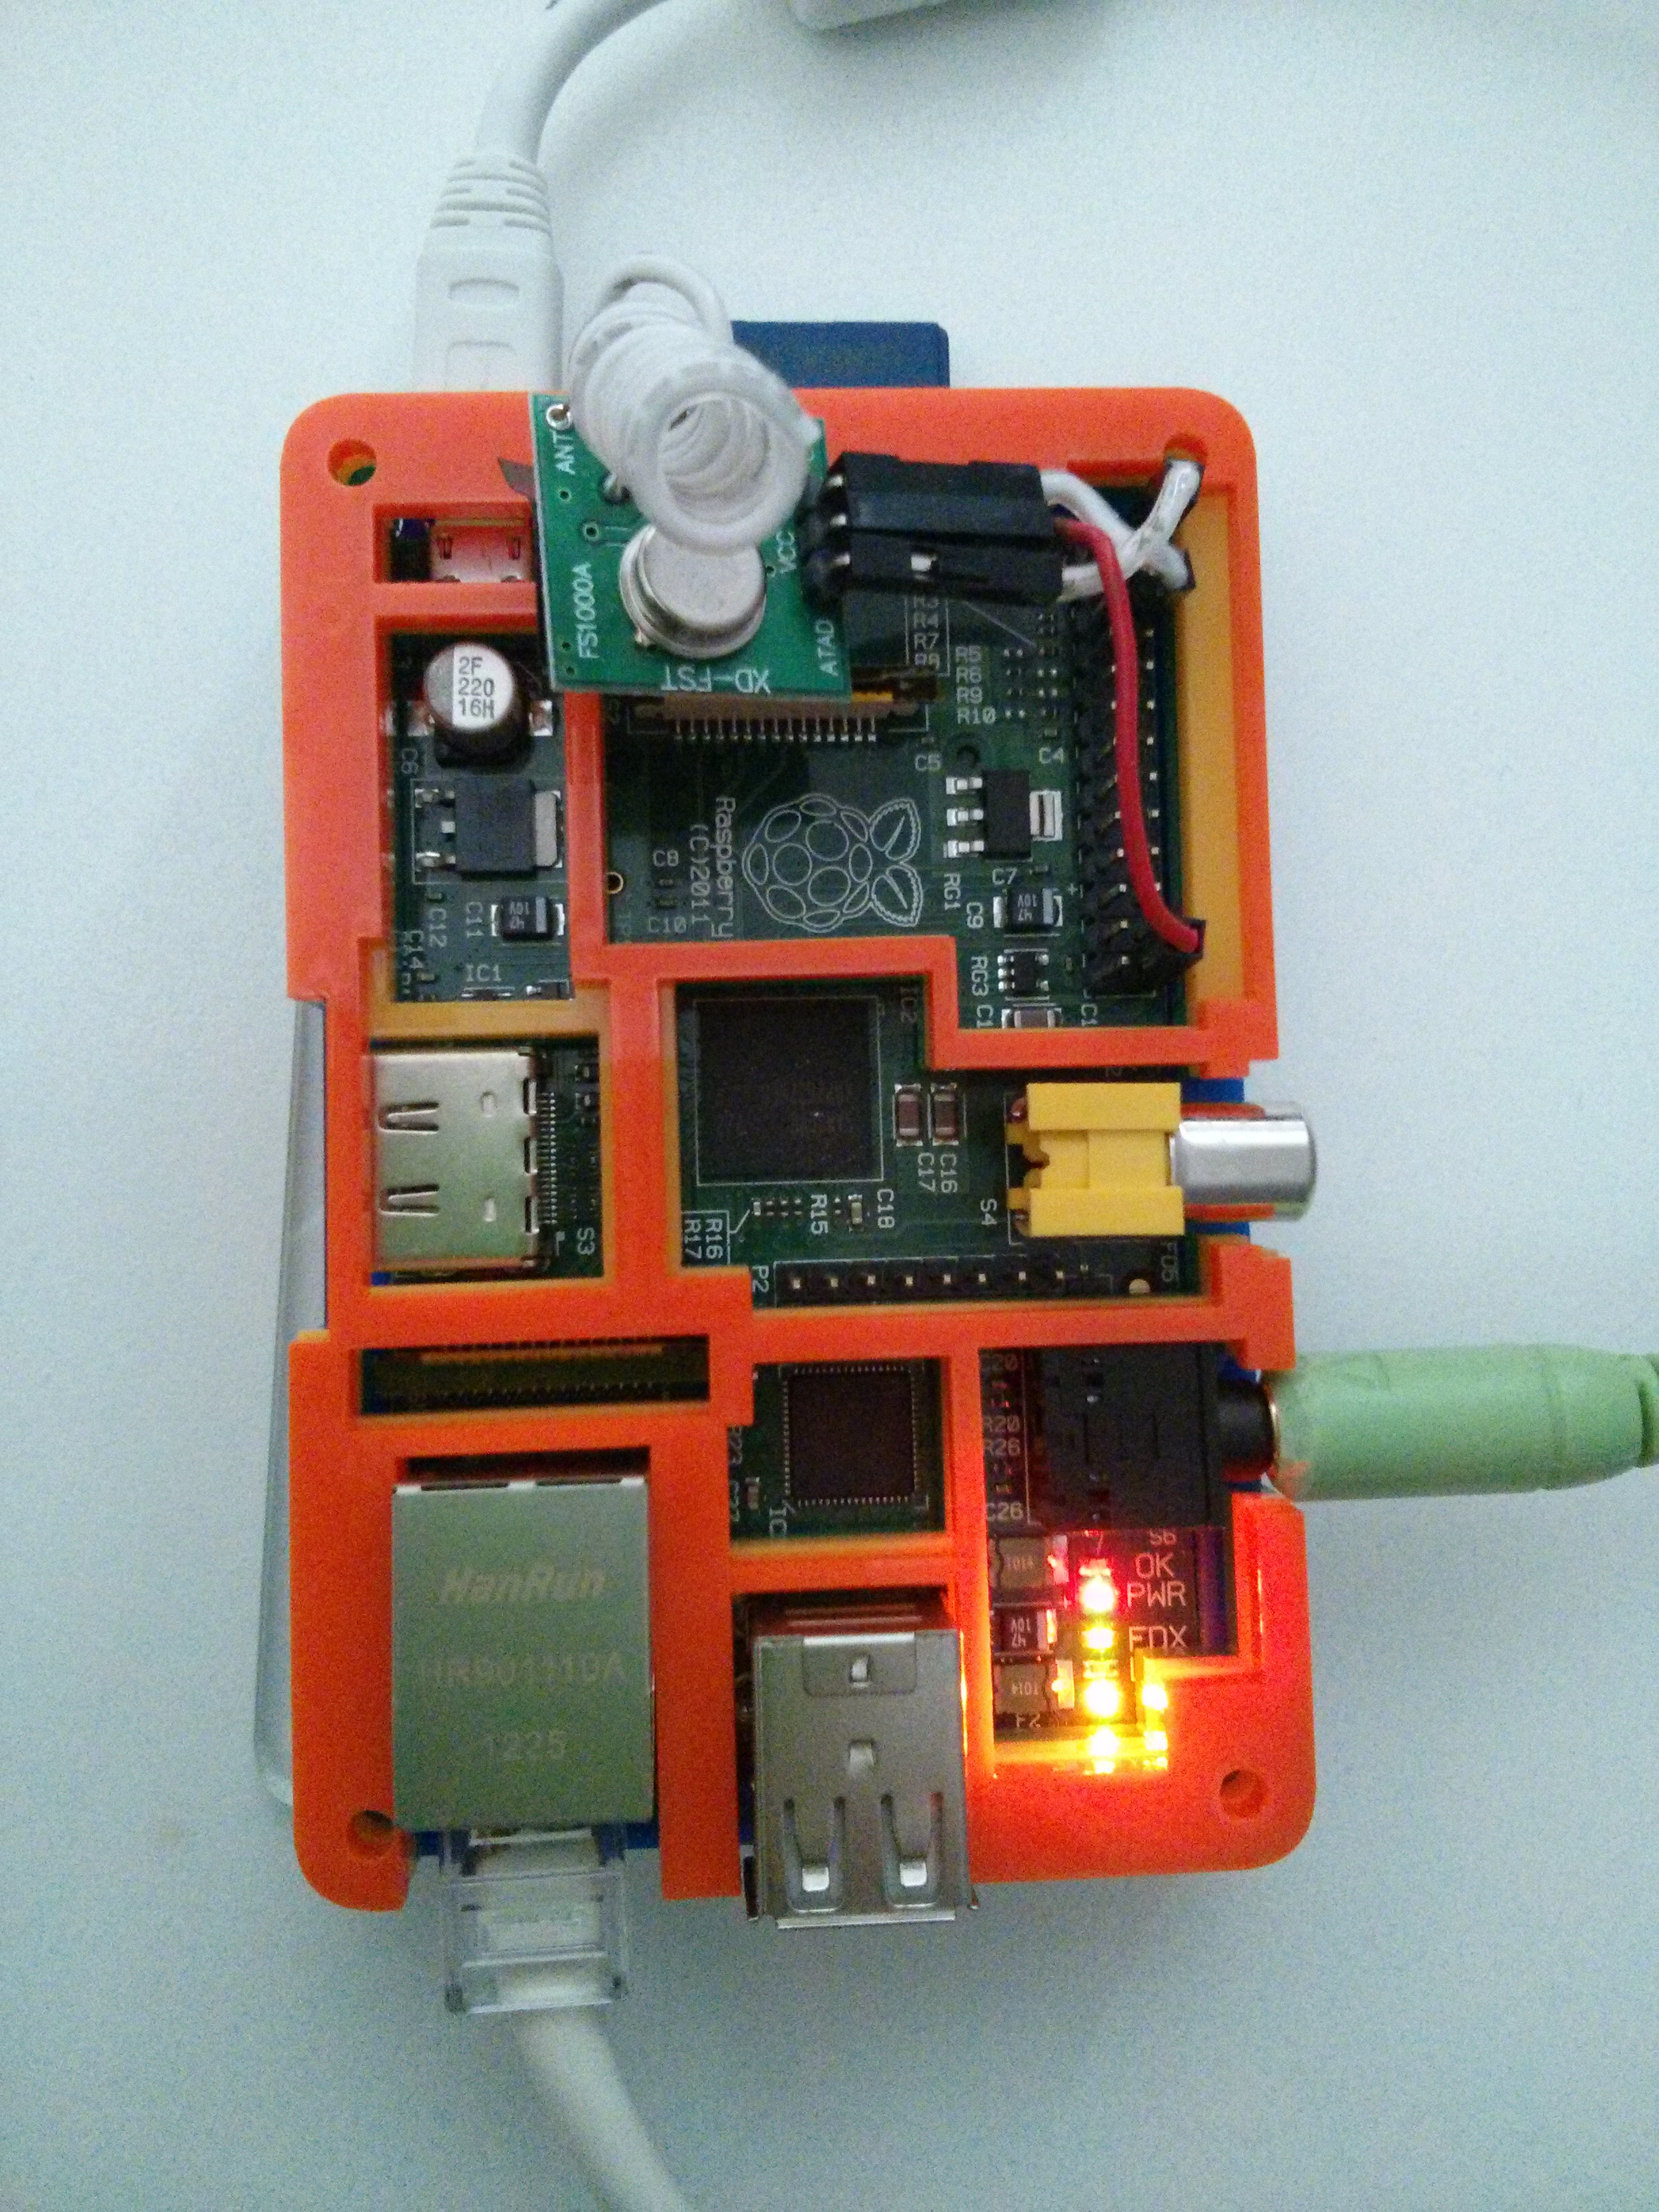 Raspberry Pi showing 315mHz tranmitter installed with dupont connectors